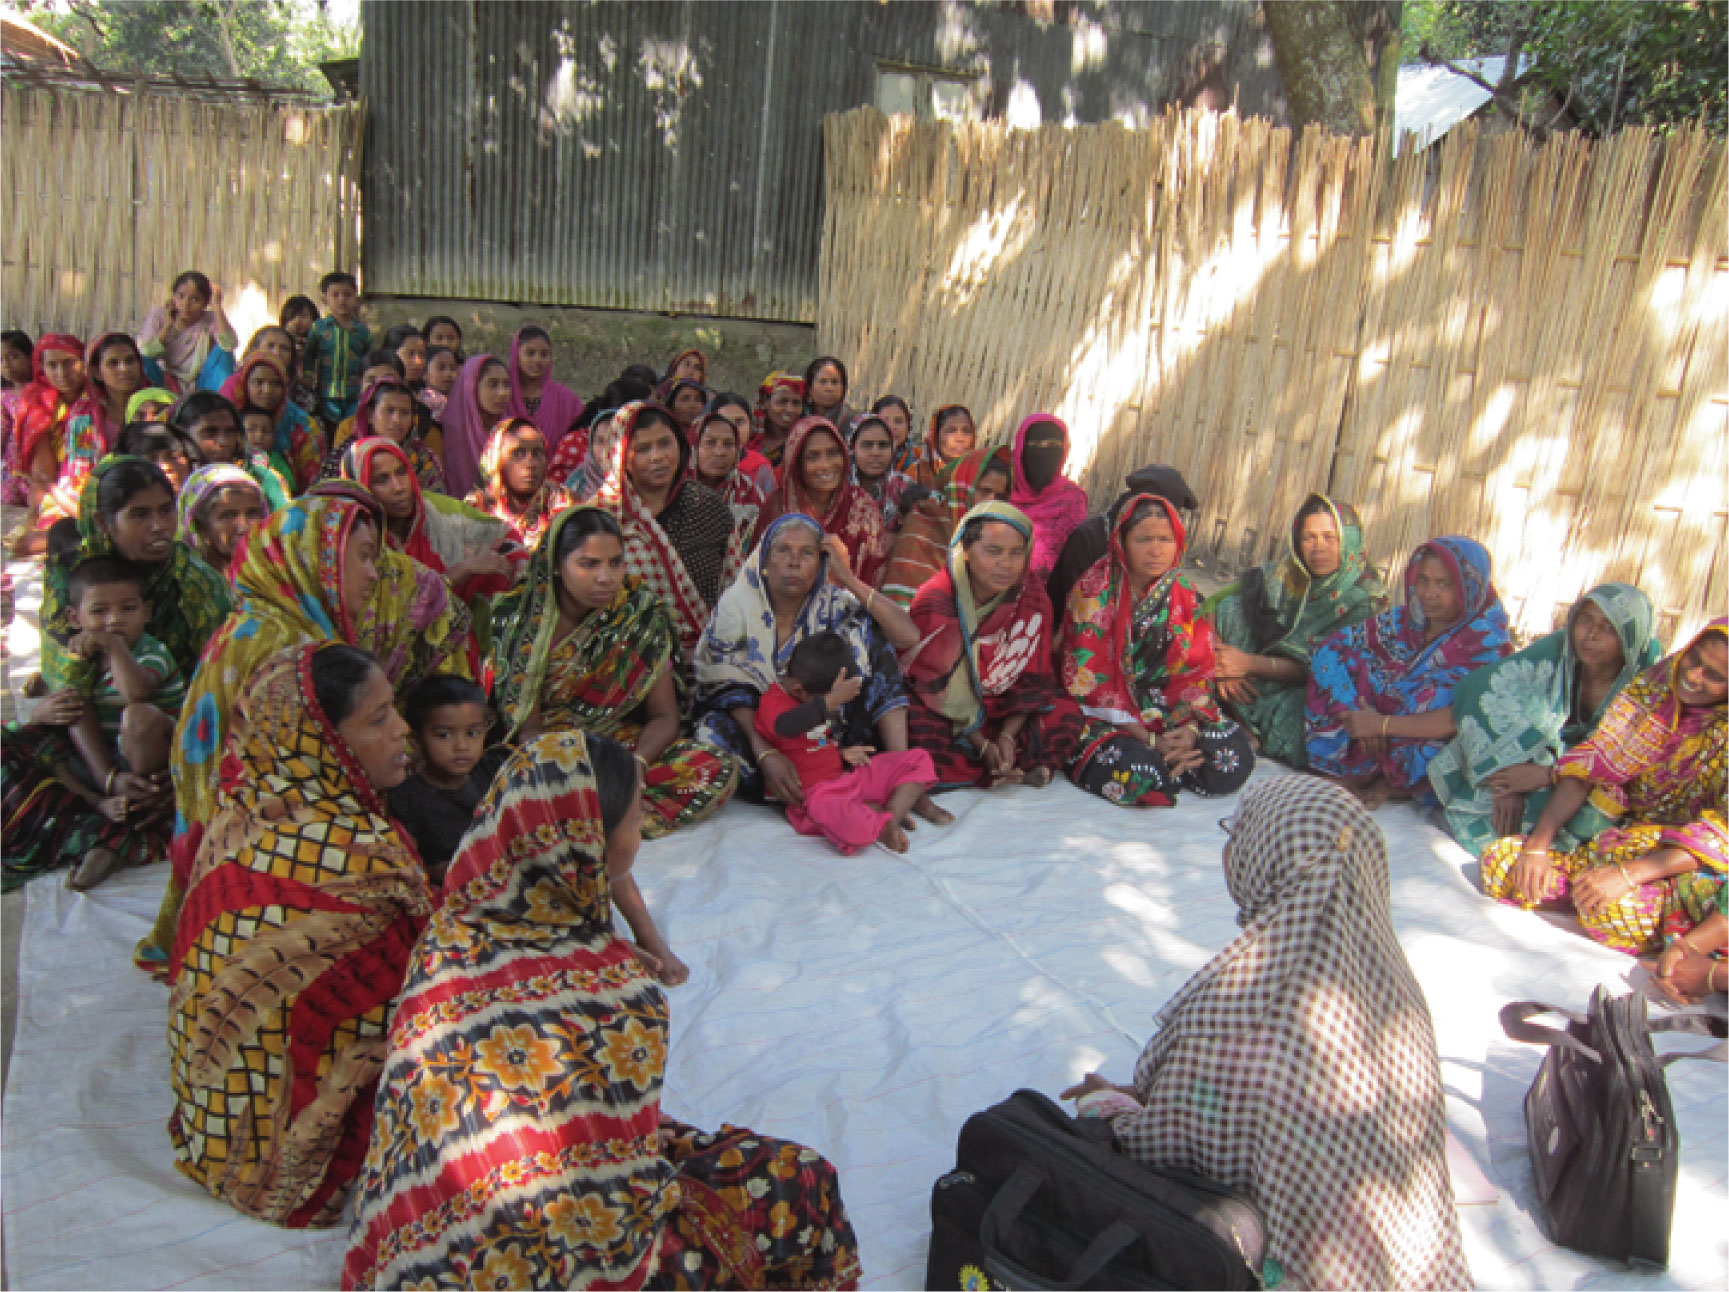 """Adult literacy group in rural Nepal.  Economic and educational programs are increasingly endorsed to promote """"women's empowerment"""" in the Global South, but do they deliver on their promise?"""